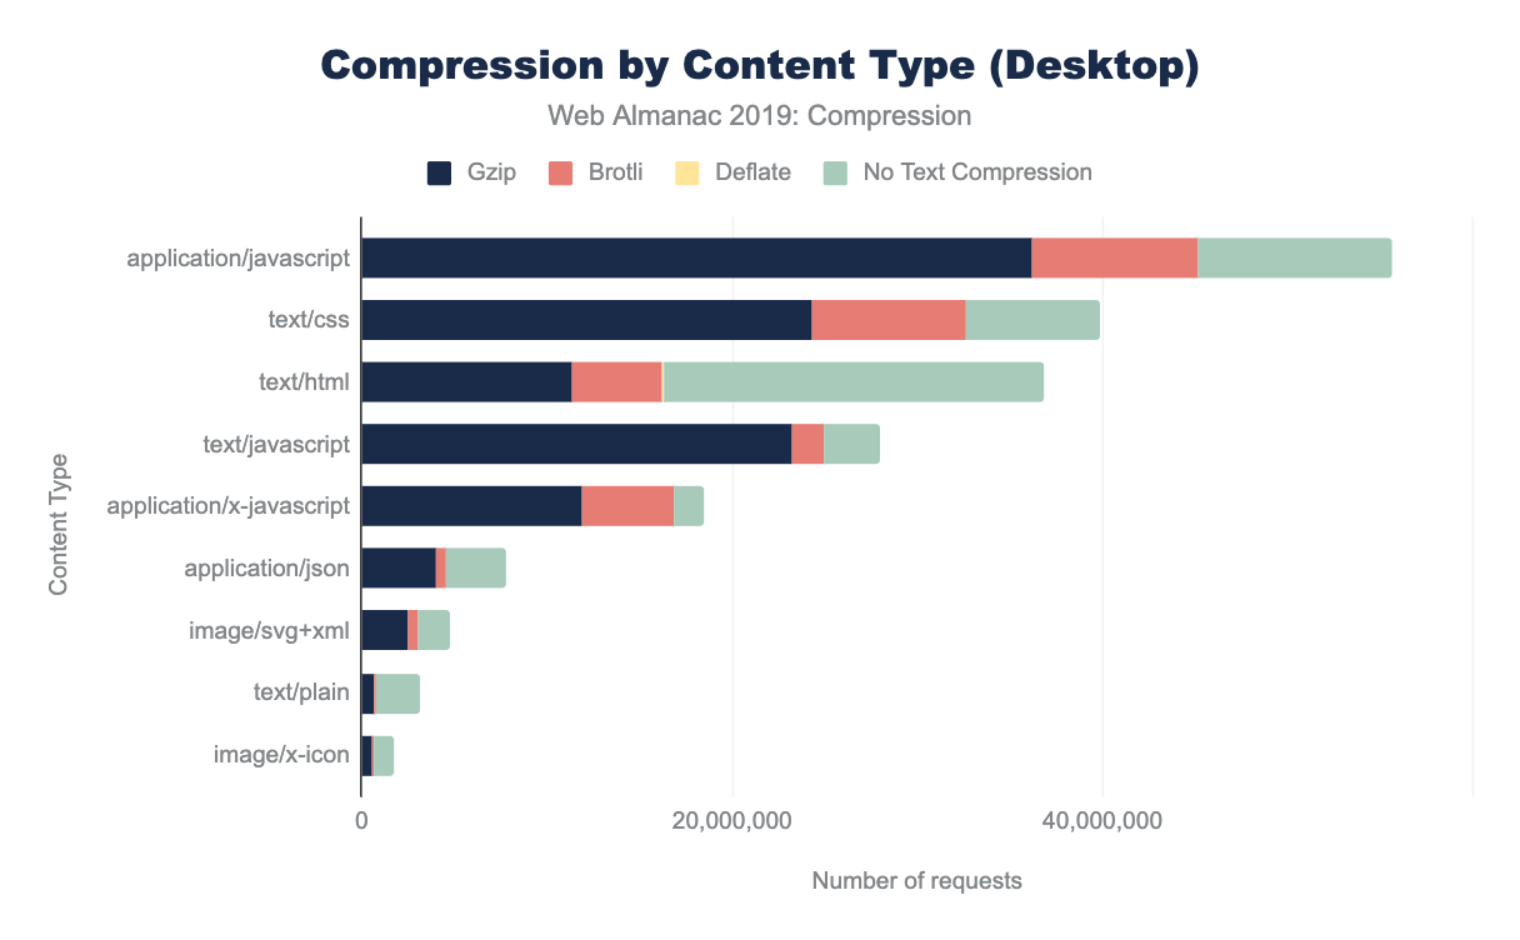 Compression by content type for desktop.